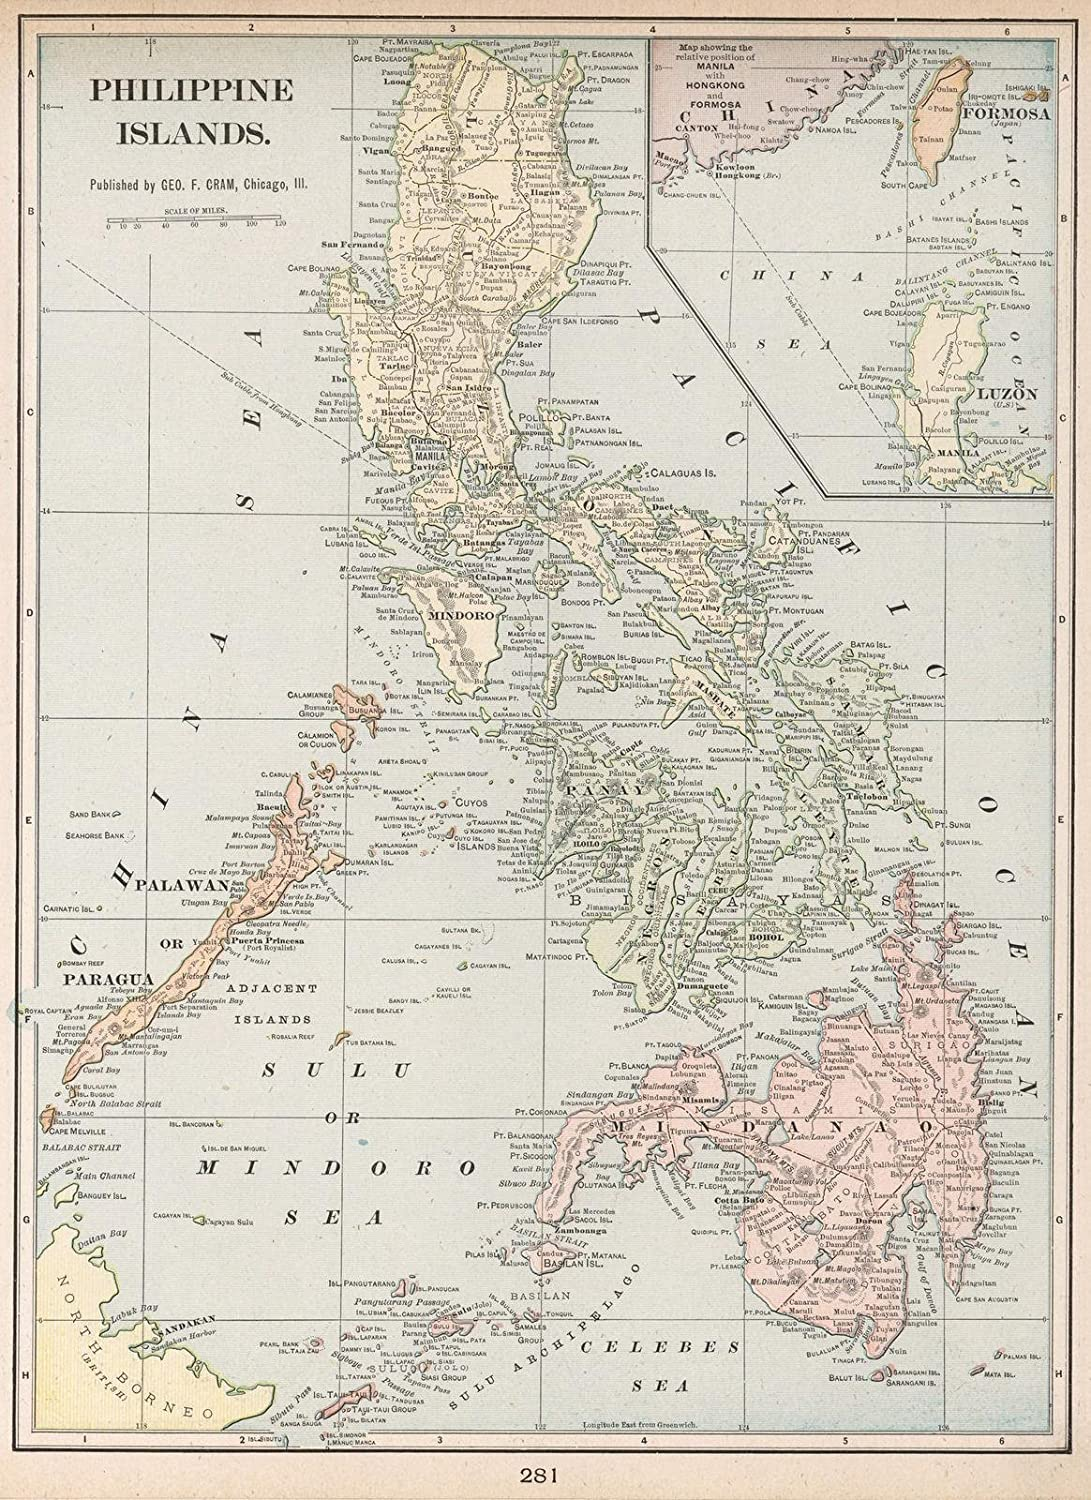 Amazon.com: World Atlas | 1901 Philippine Islands | Historic Antique Vintage Map Reprint: Posters & Prints